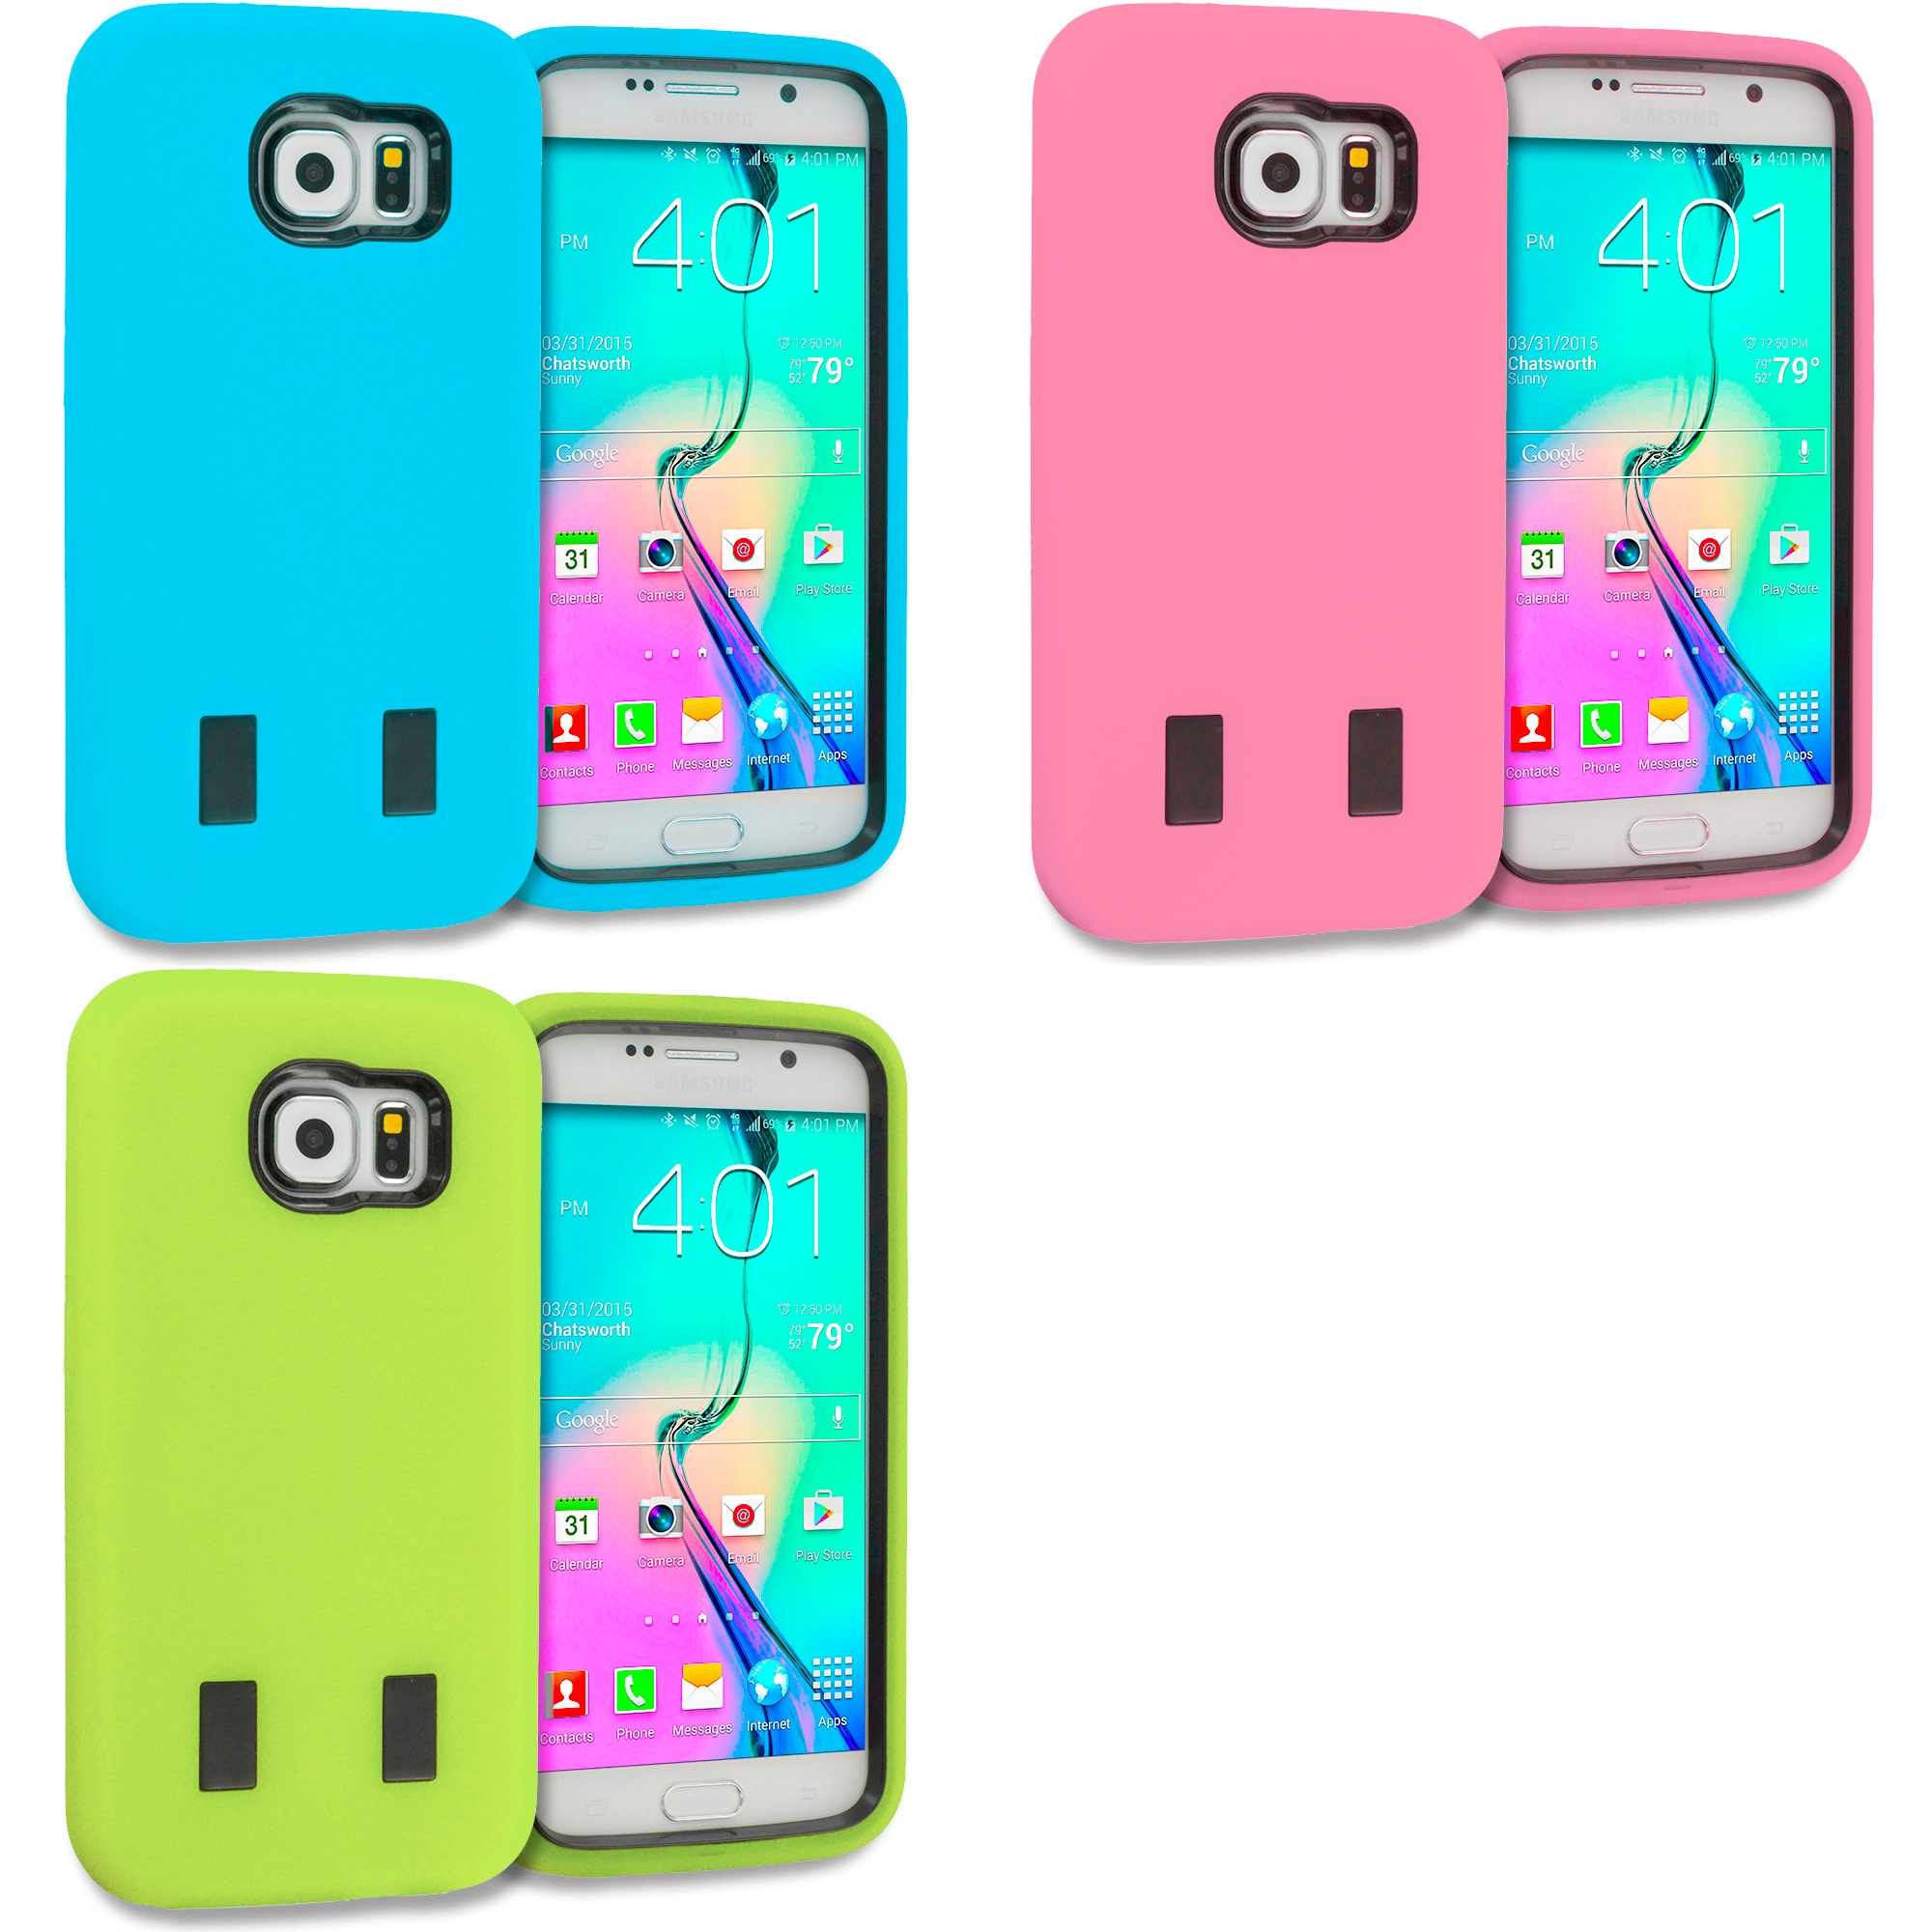 Samsung Galaxy S6 Combo Pack : Baby Blue / Black Hybrid Deluxe Hard/Soft Case Cover